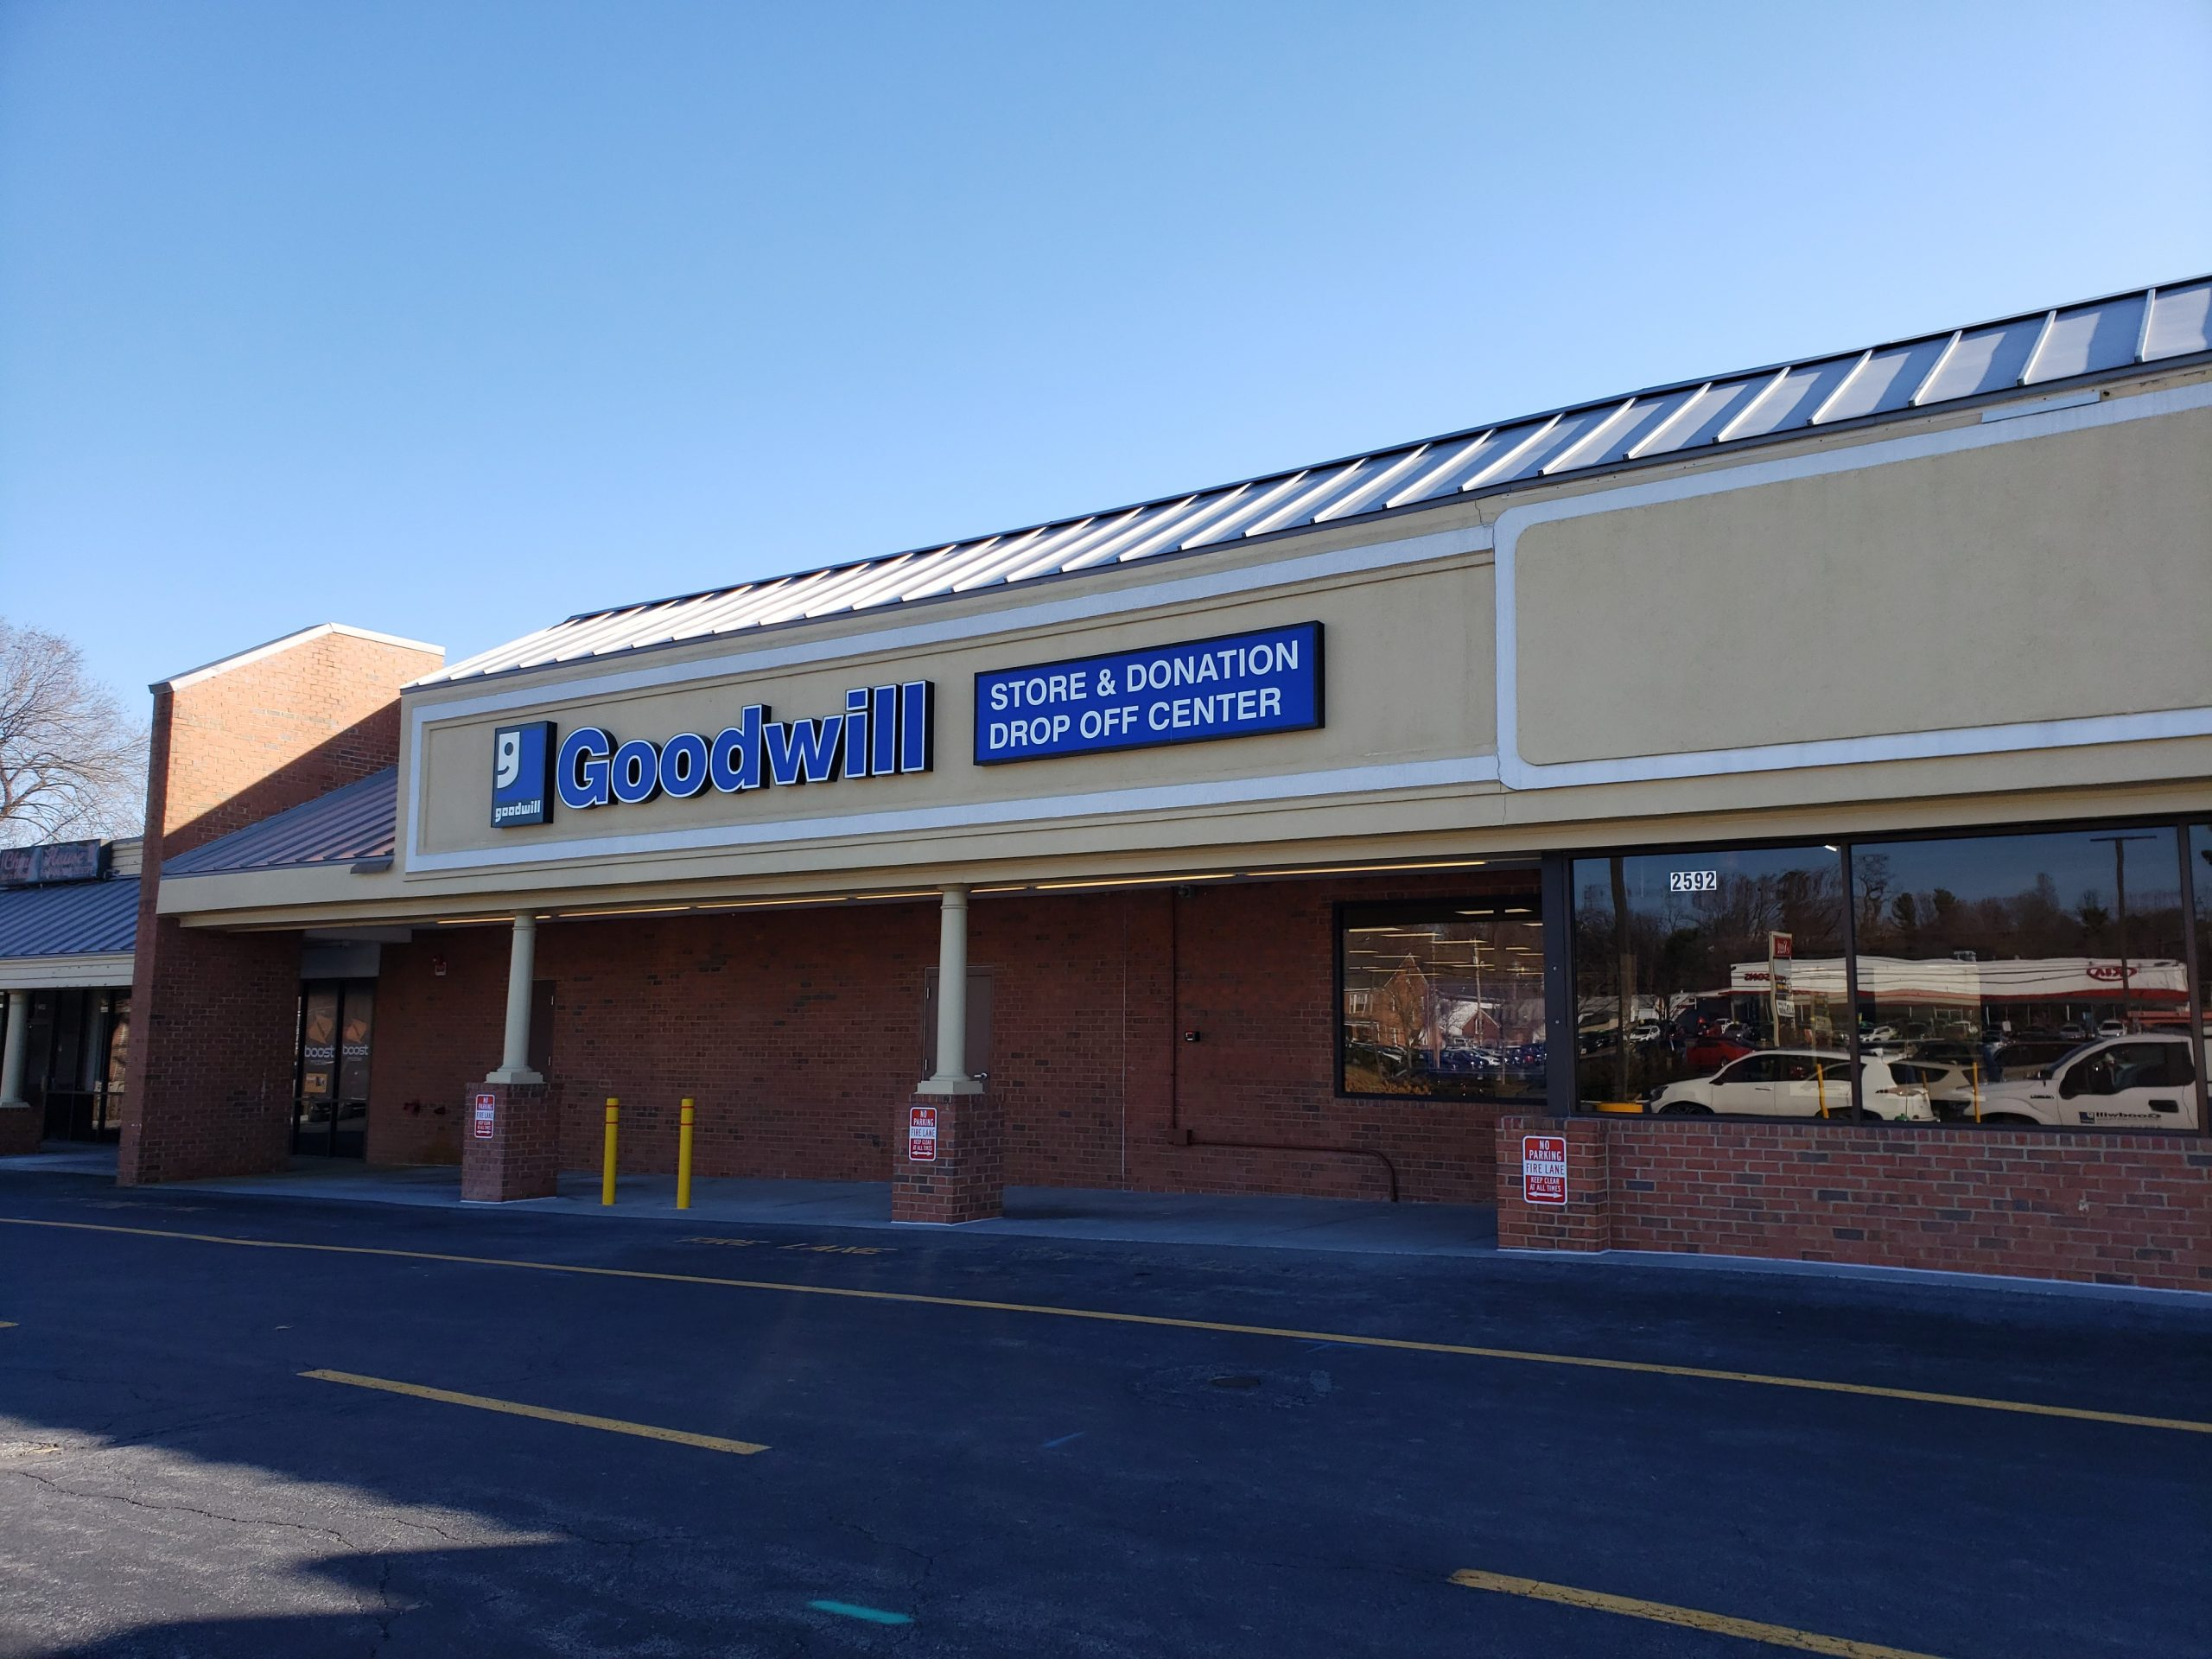 Horizon Goodwill opens additional locations with Contactless Donation Process